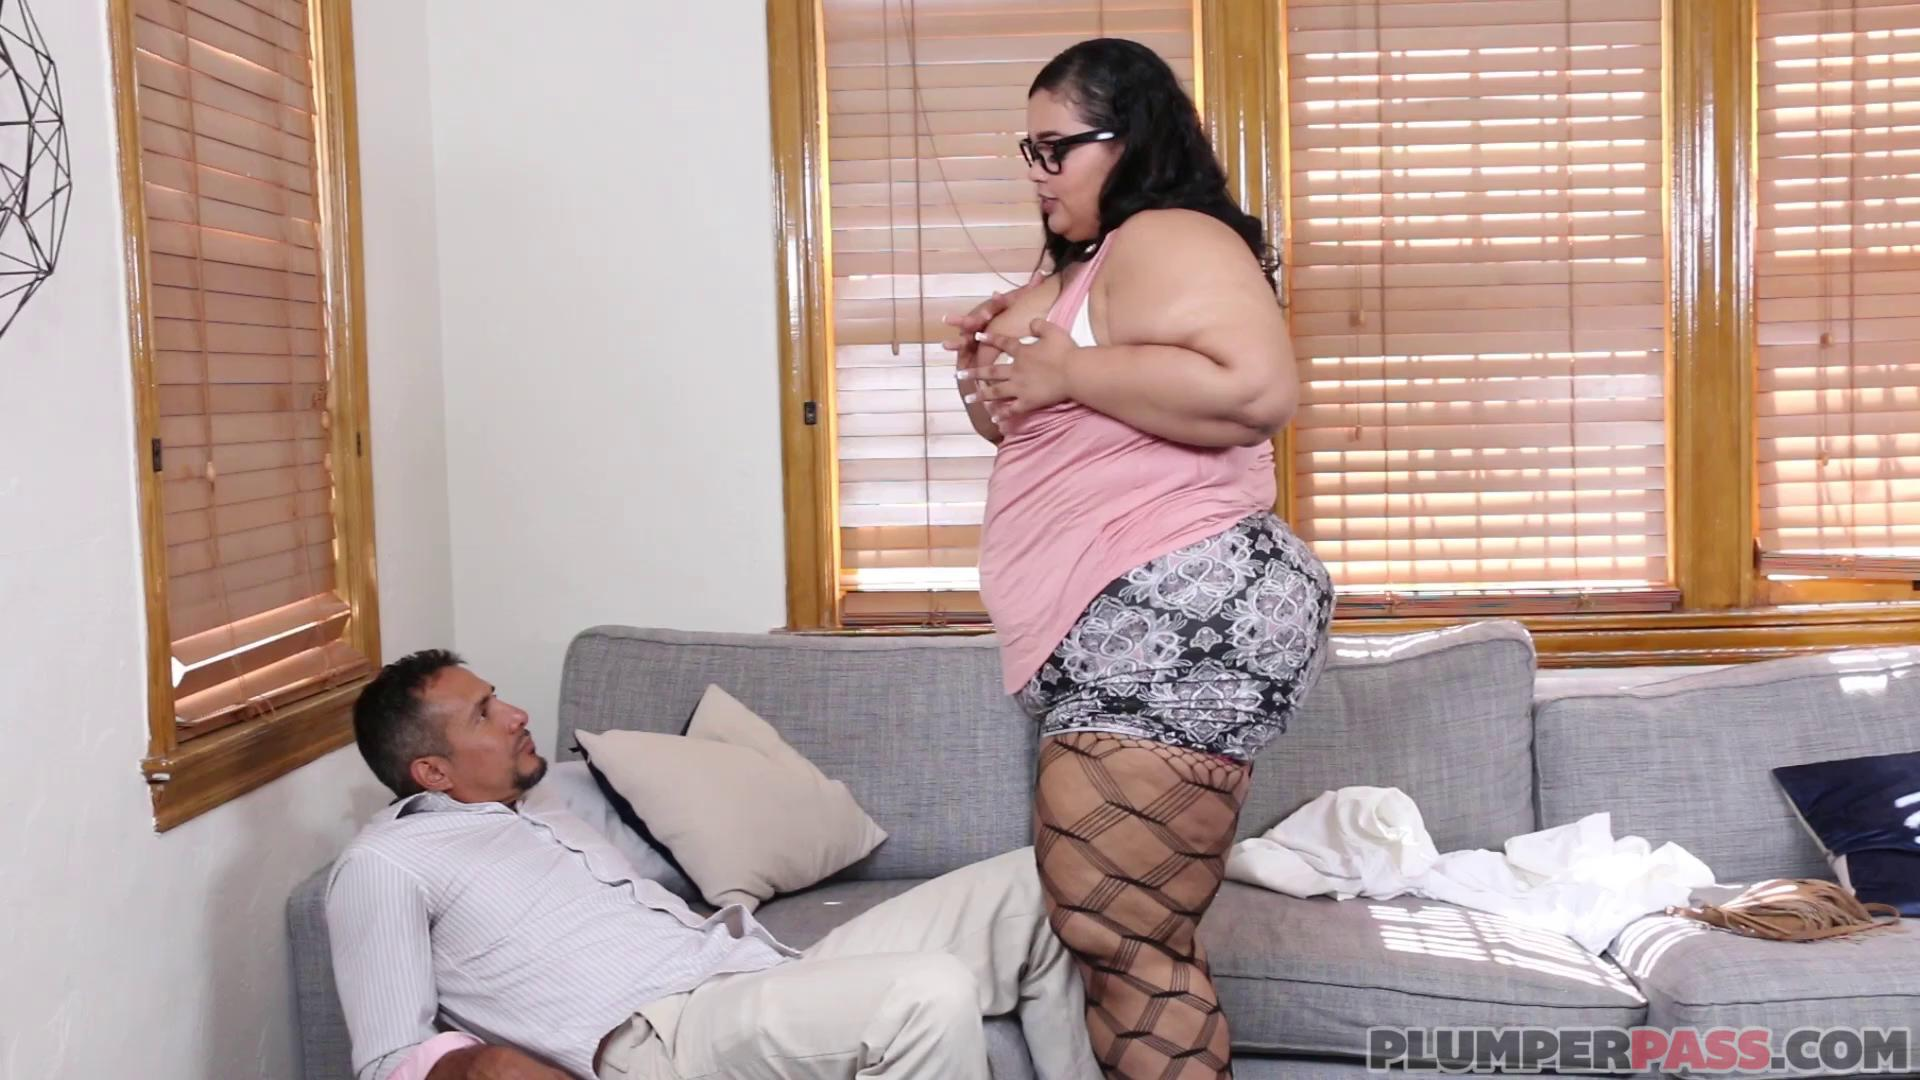 PlumperPass – Nirvana Lust Anything For An Education